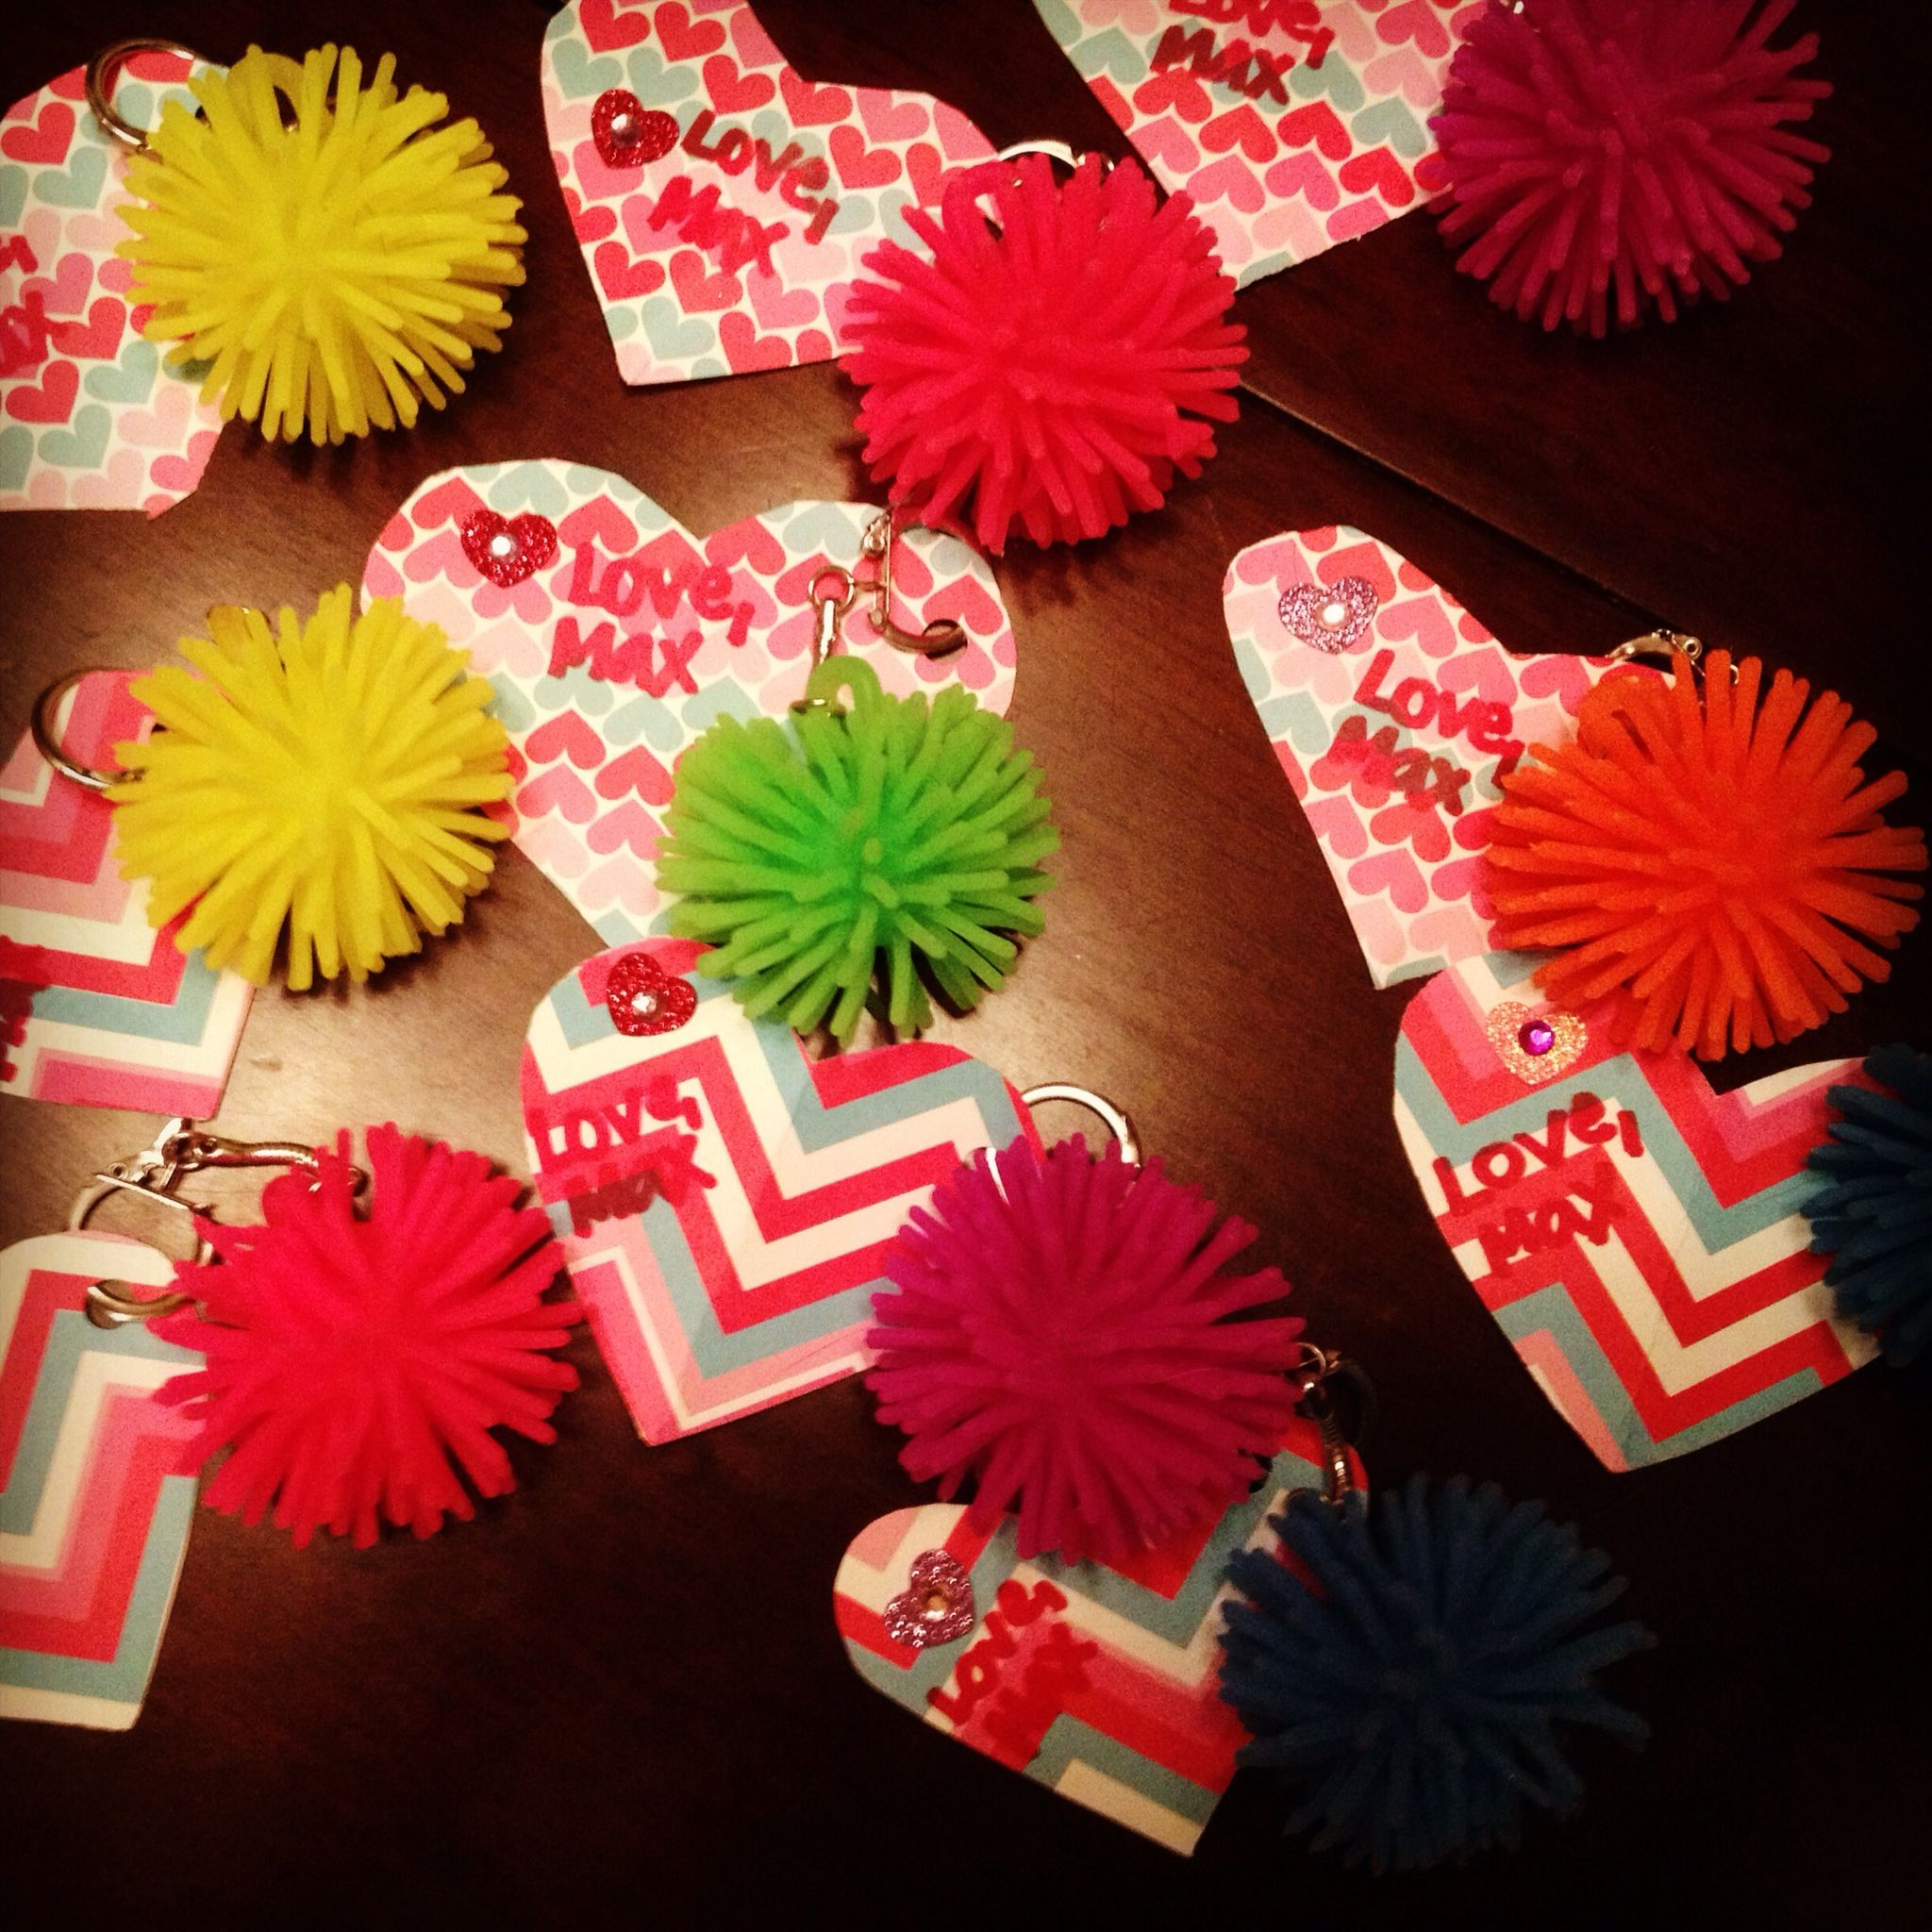 Christmas Craft Ideas For 2 Year Olds Part - 43: Homemade Valentines For My Sonu0027s 1 To 2 Year Old Daycare Class!